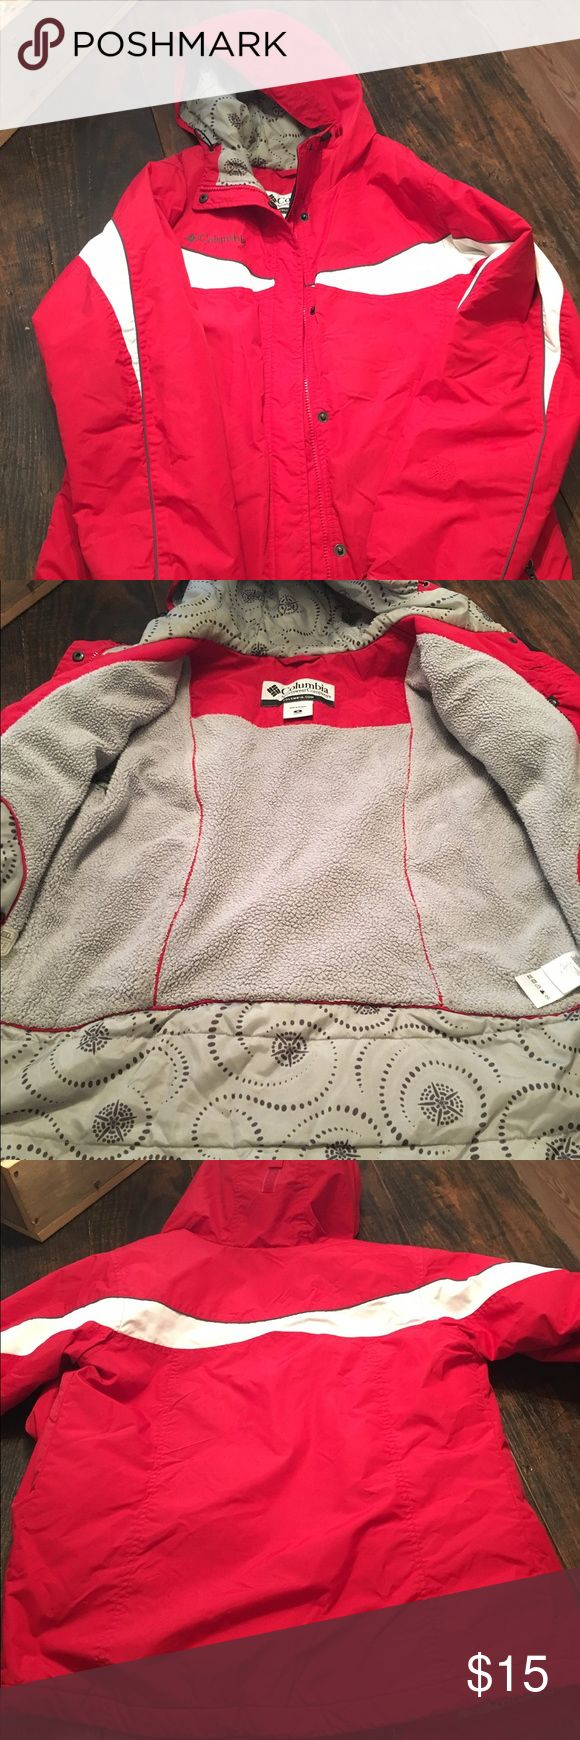 Columbia jacket Women's winter Columbia coat. Size M. Gently used, in great condition. Columbia Jackets & Coats